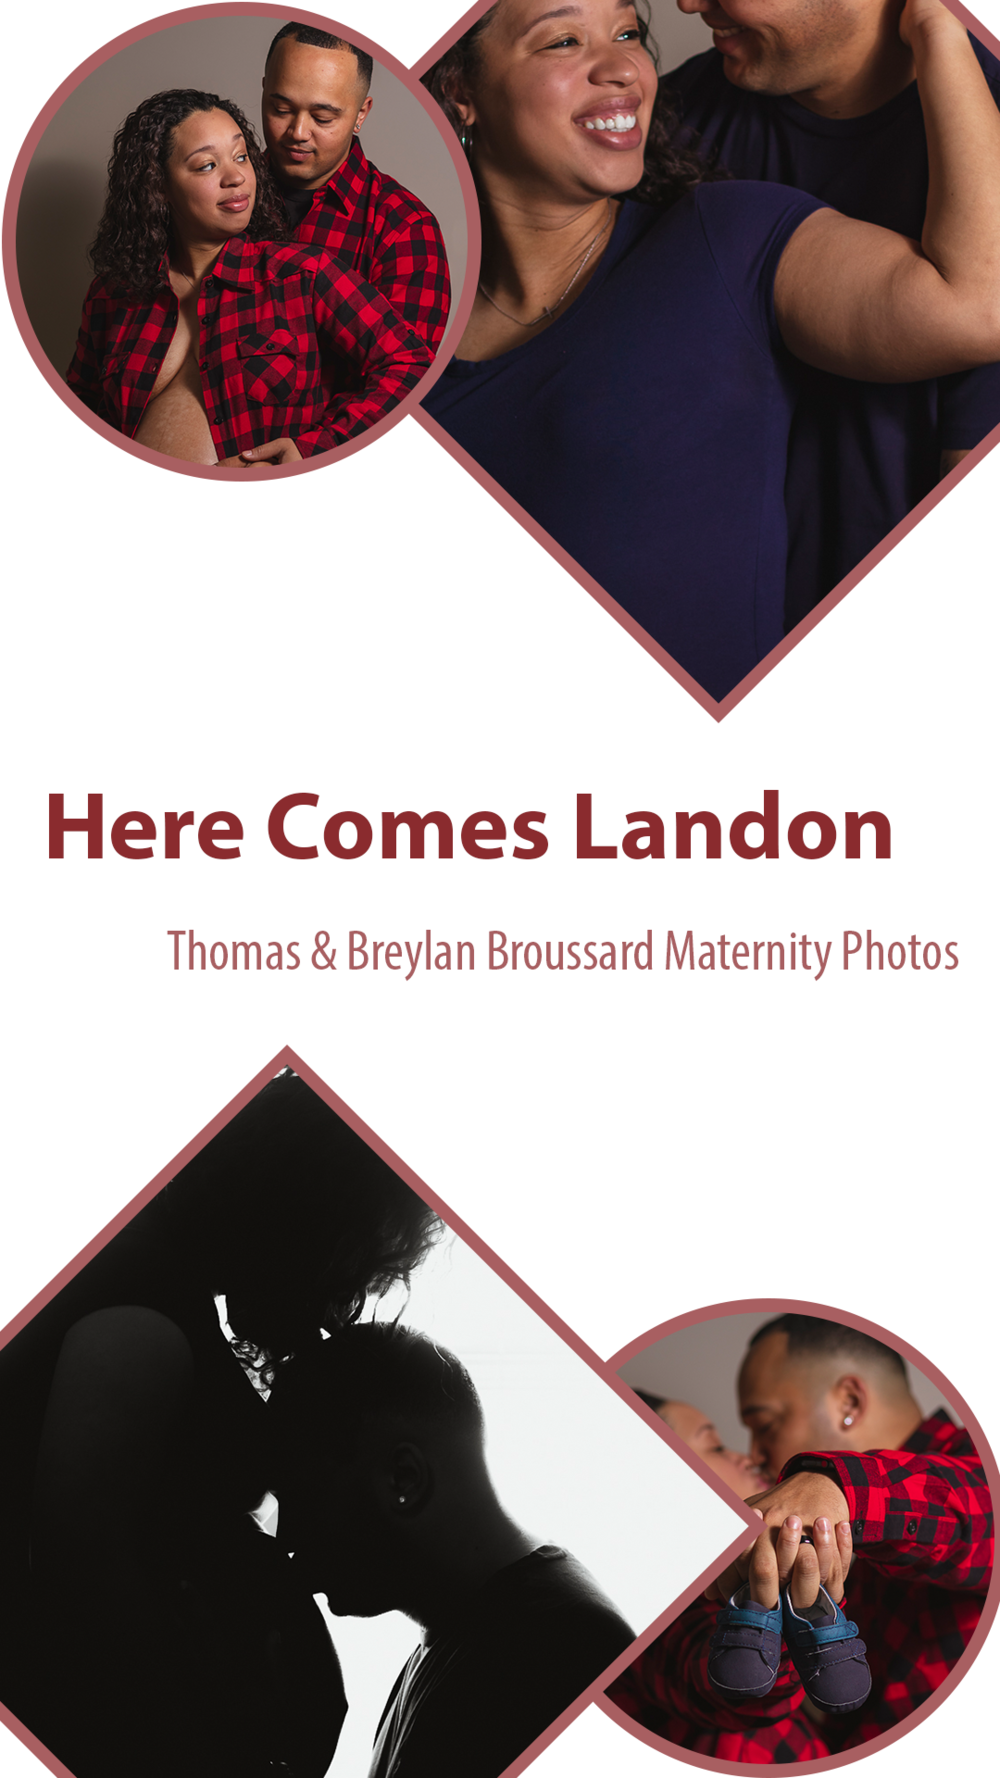 Here comes landon featured photo.png